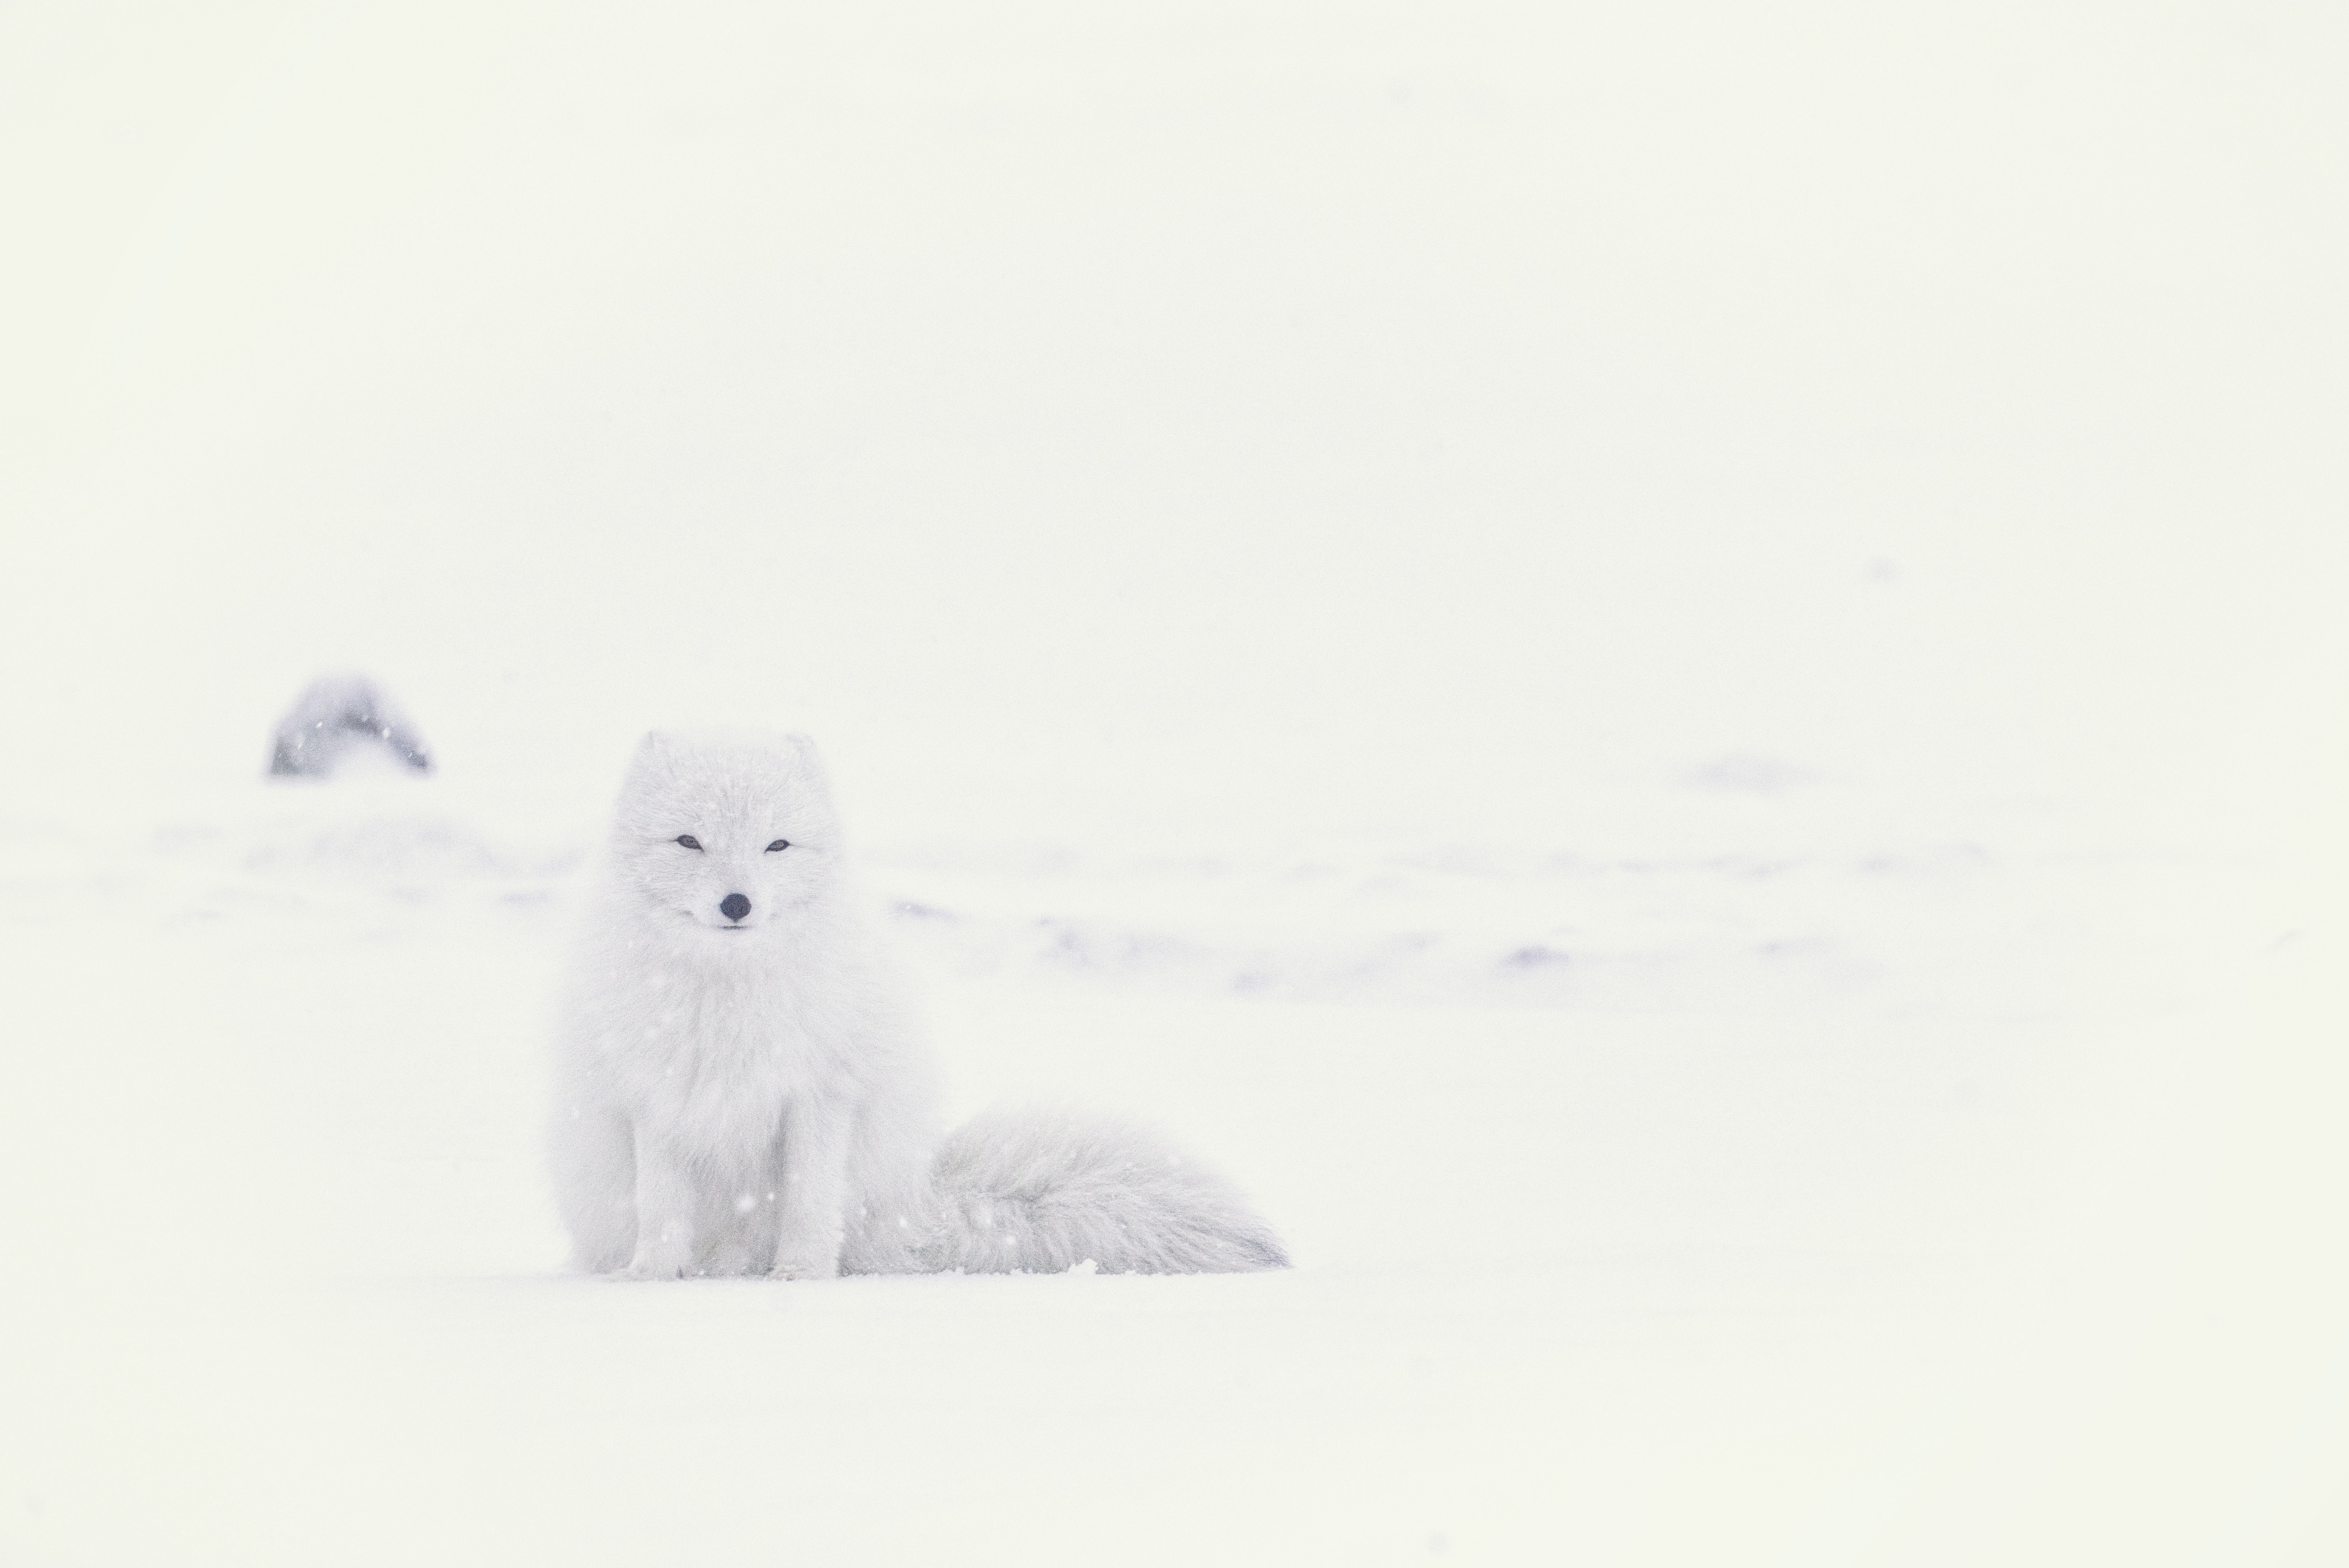 White arctic fox blends in with the snowy landscape